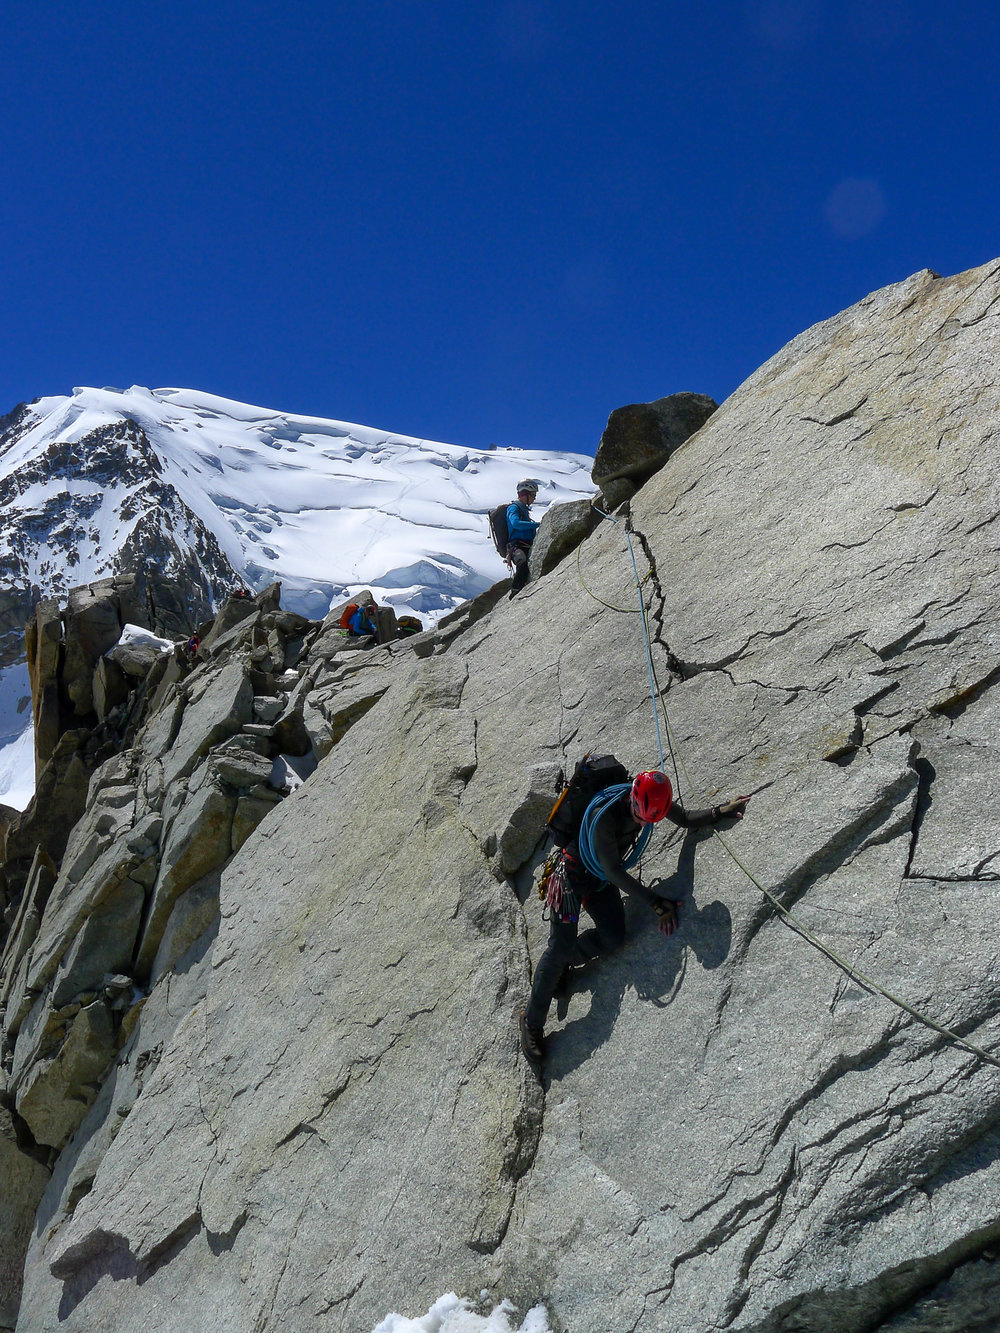 Putting Alpine skills to the test on the Arete Laurence